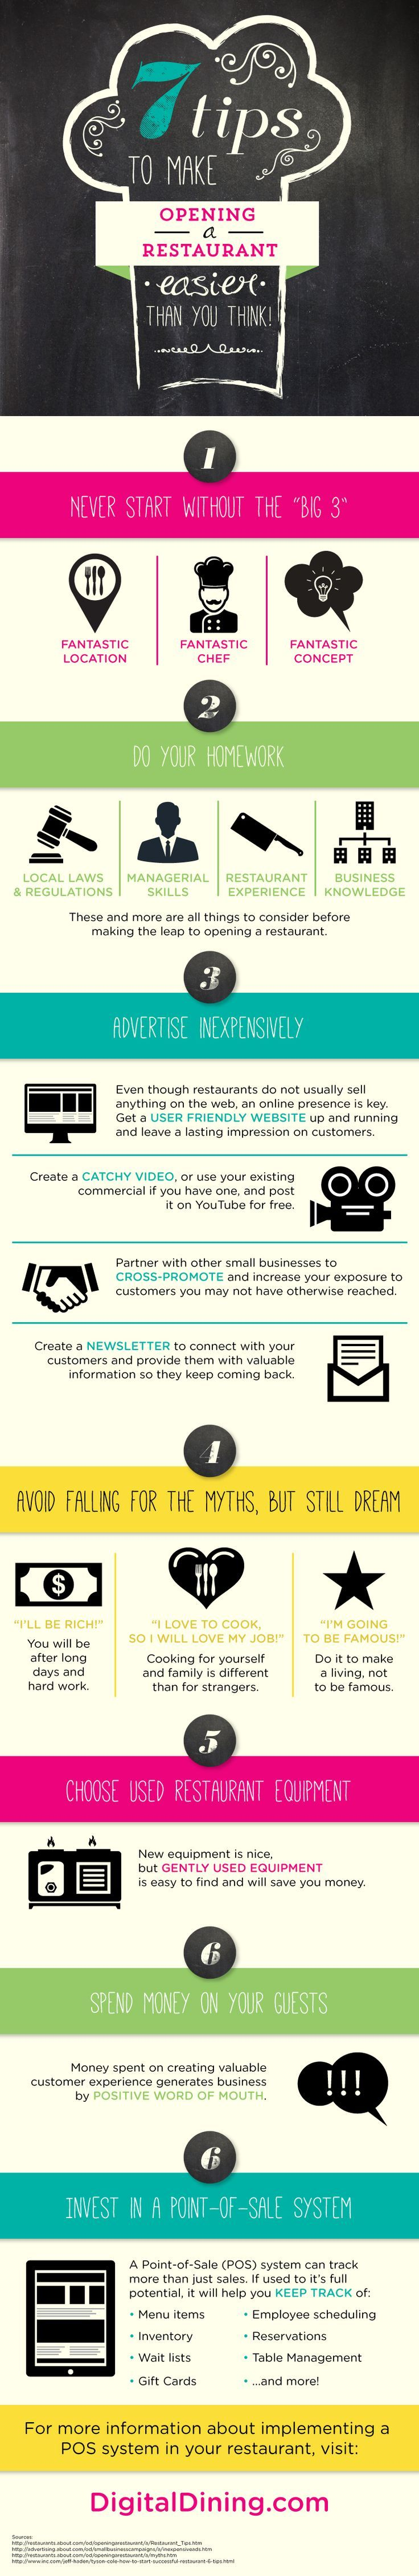 7 Tips to Make Opening a Restaurant Easier #infographic #Restaurant #Opening #Hotel